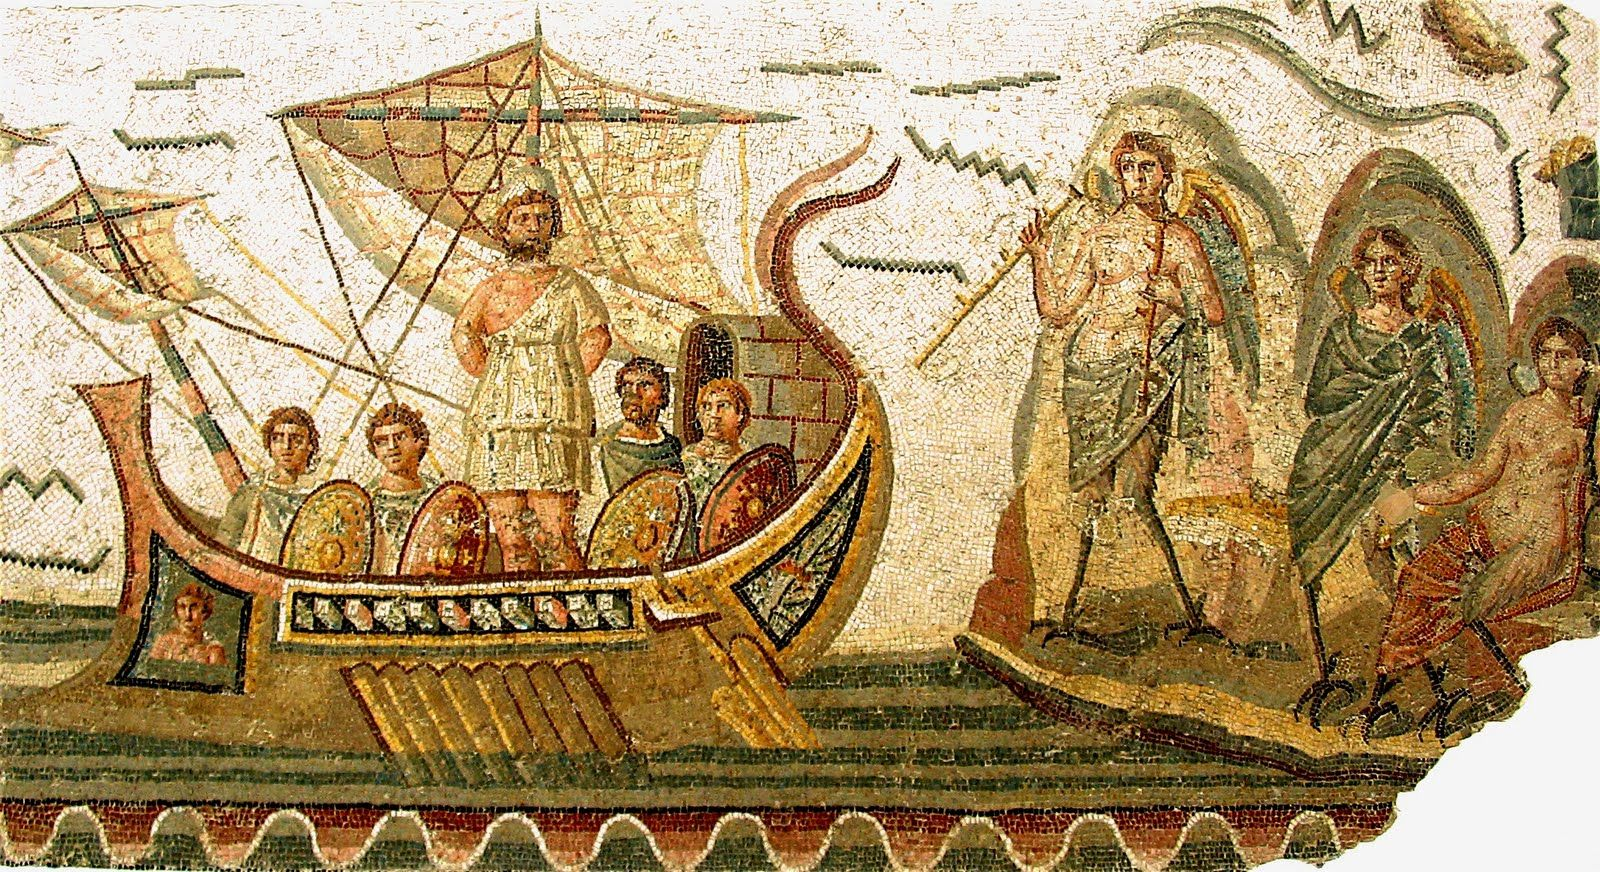 Odysseus and the sirens mosaic roman 3th century tunis bardo the mosaic roman 3th century tunis bardo fandeluxe Image collections